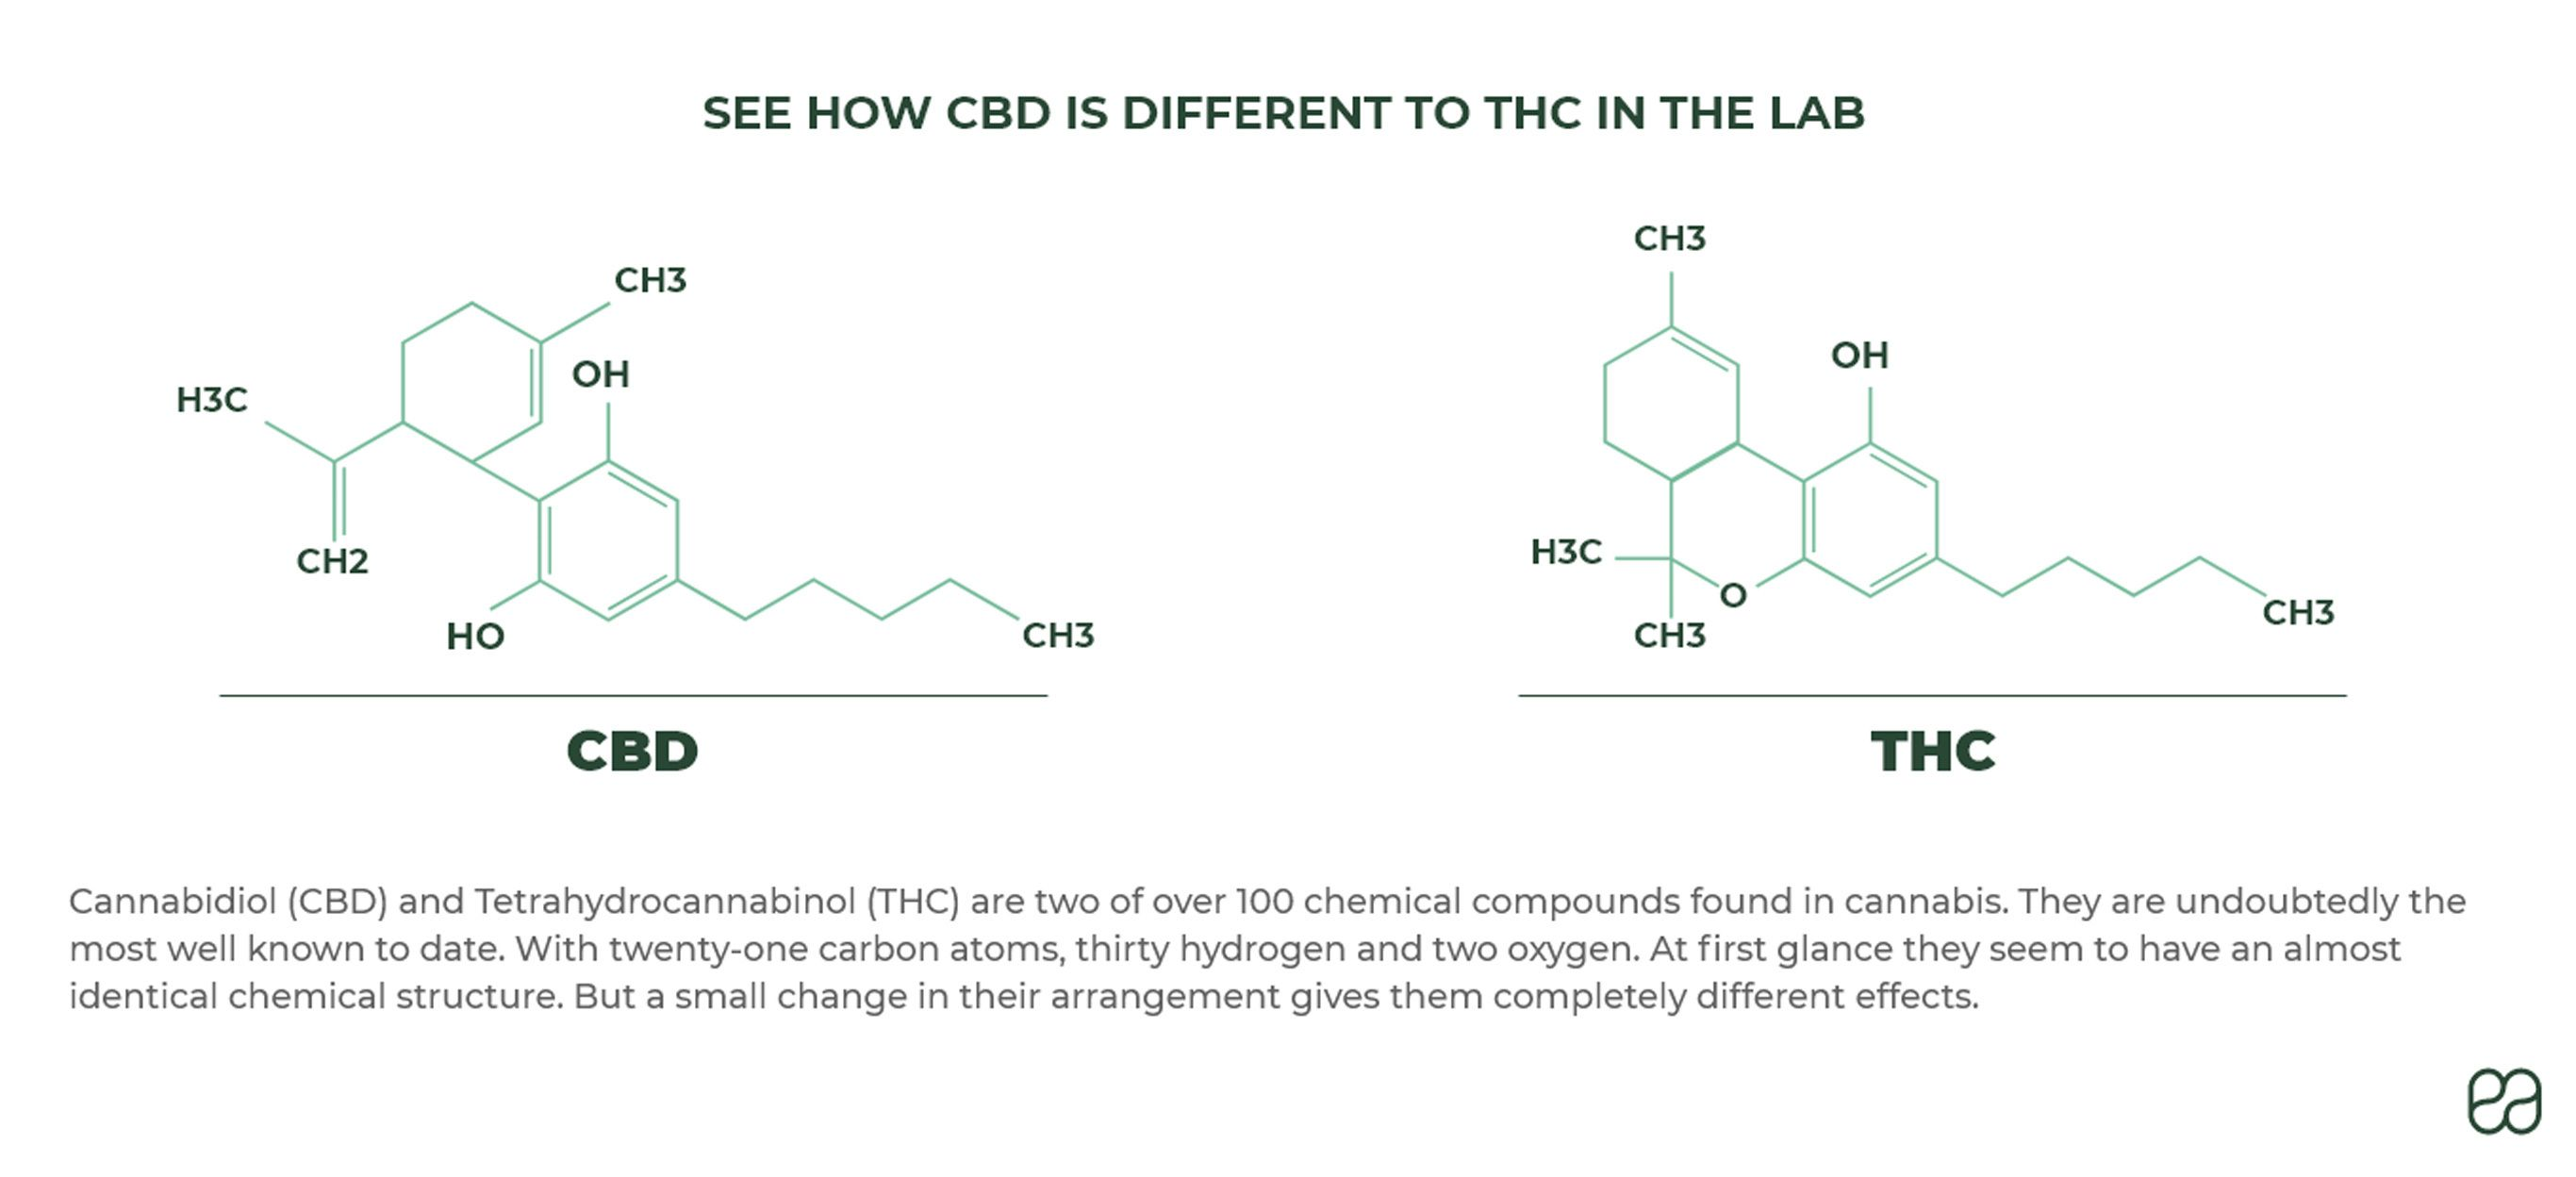 see-how-cbd-is-different-to-thc-in-the-lab